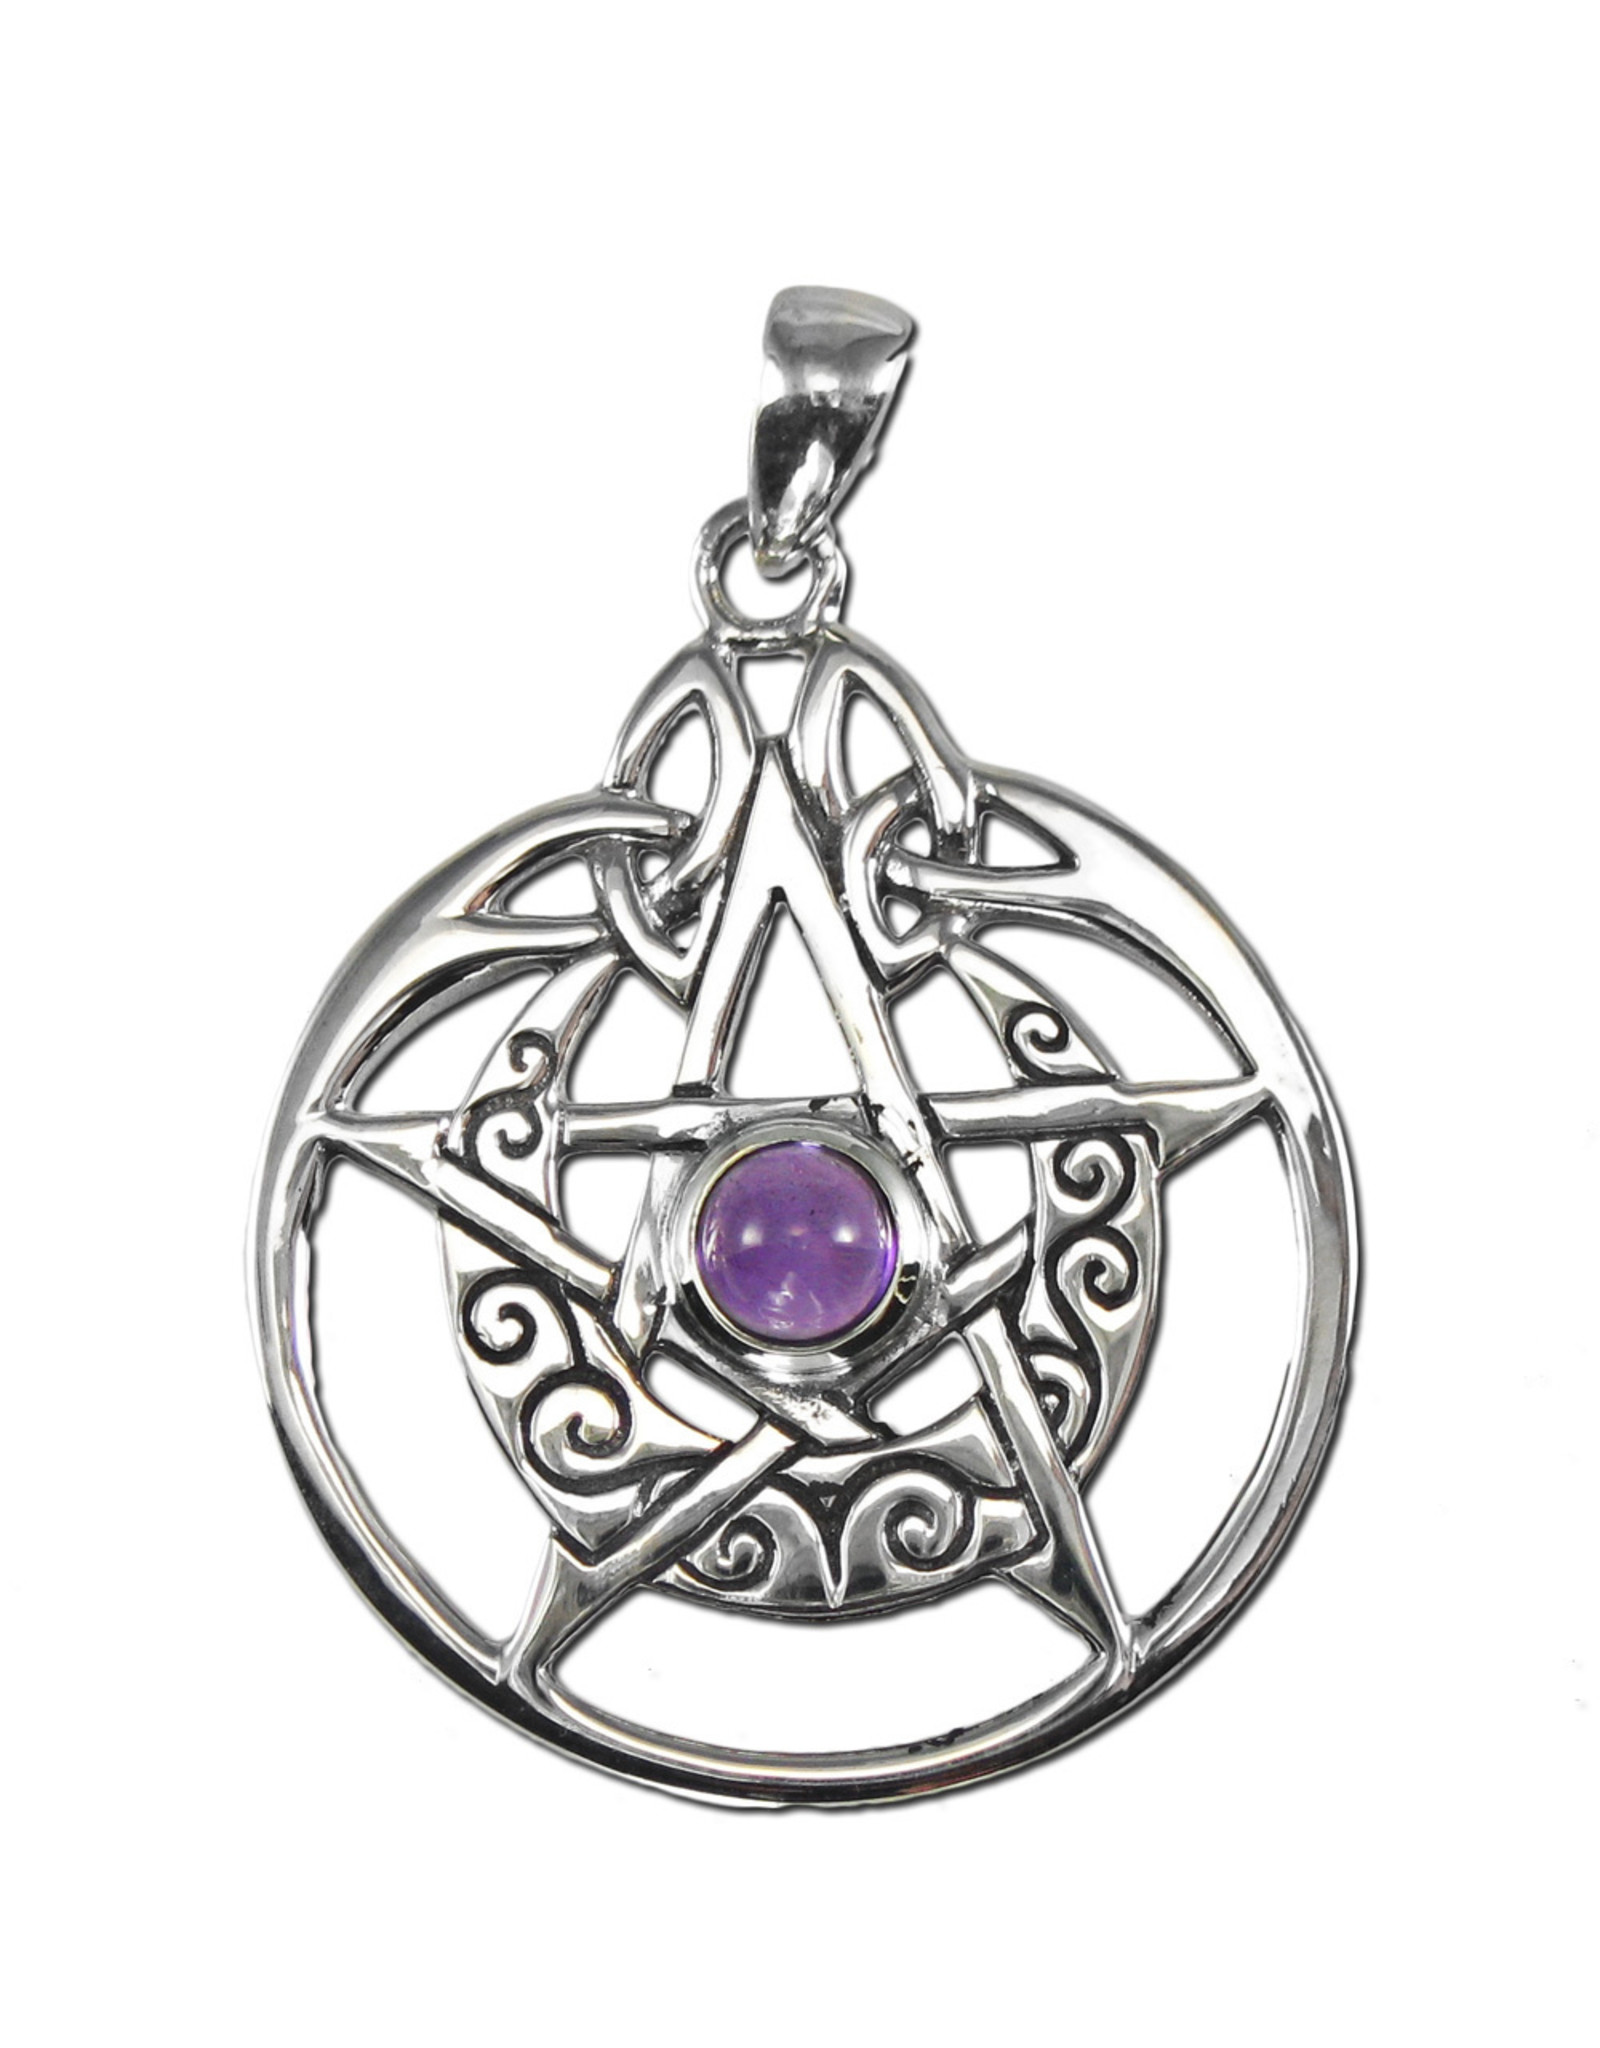 Crescent Moon Pentacle Circle Pendant with Amethyst in Sterling Silver